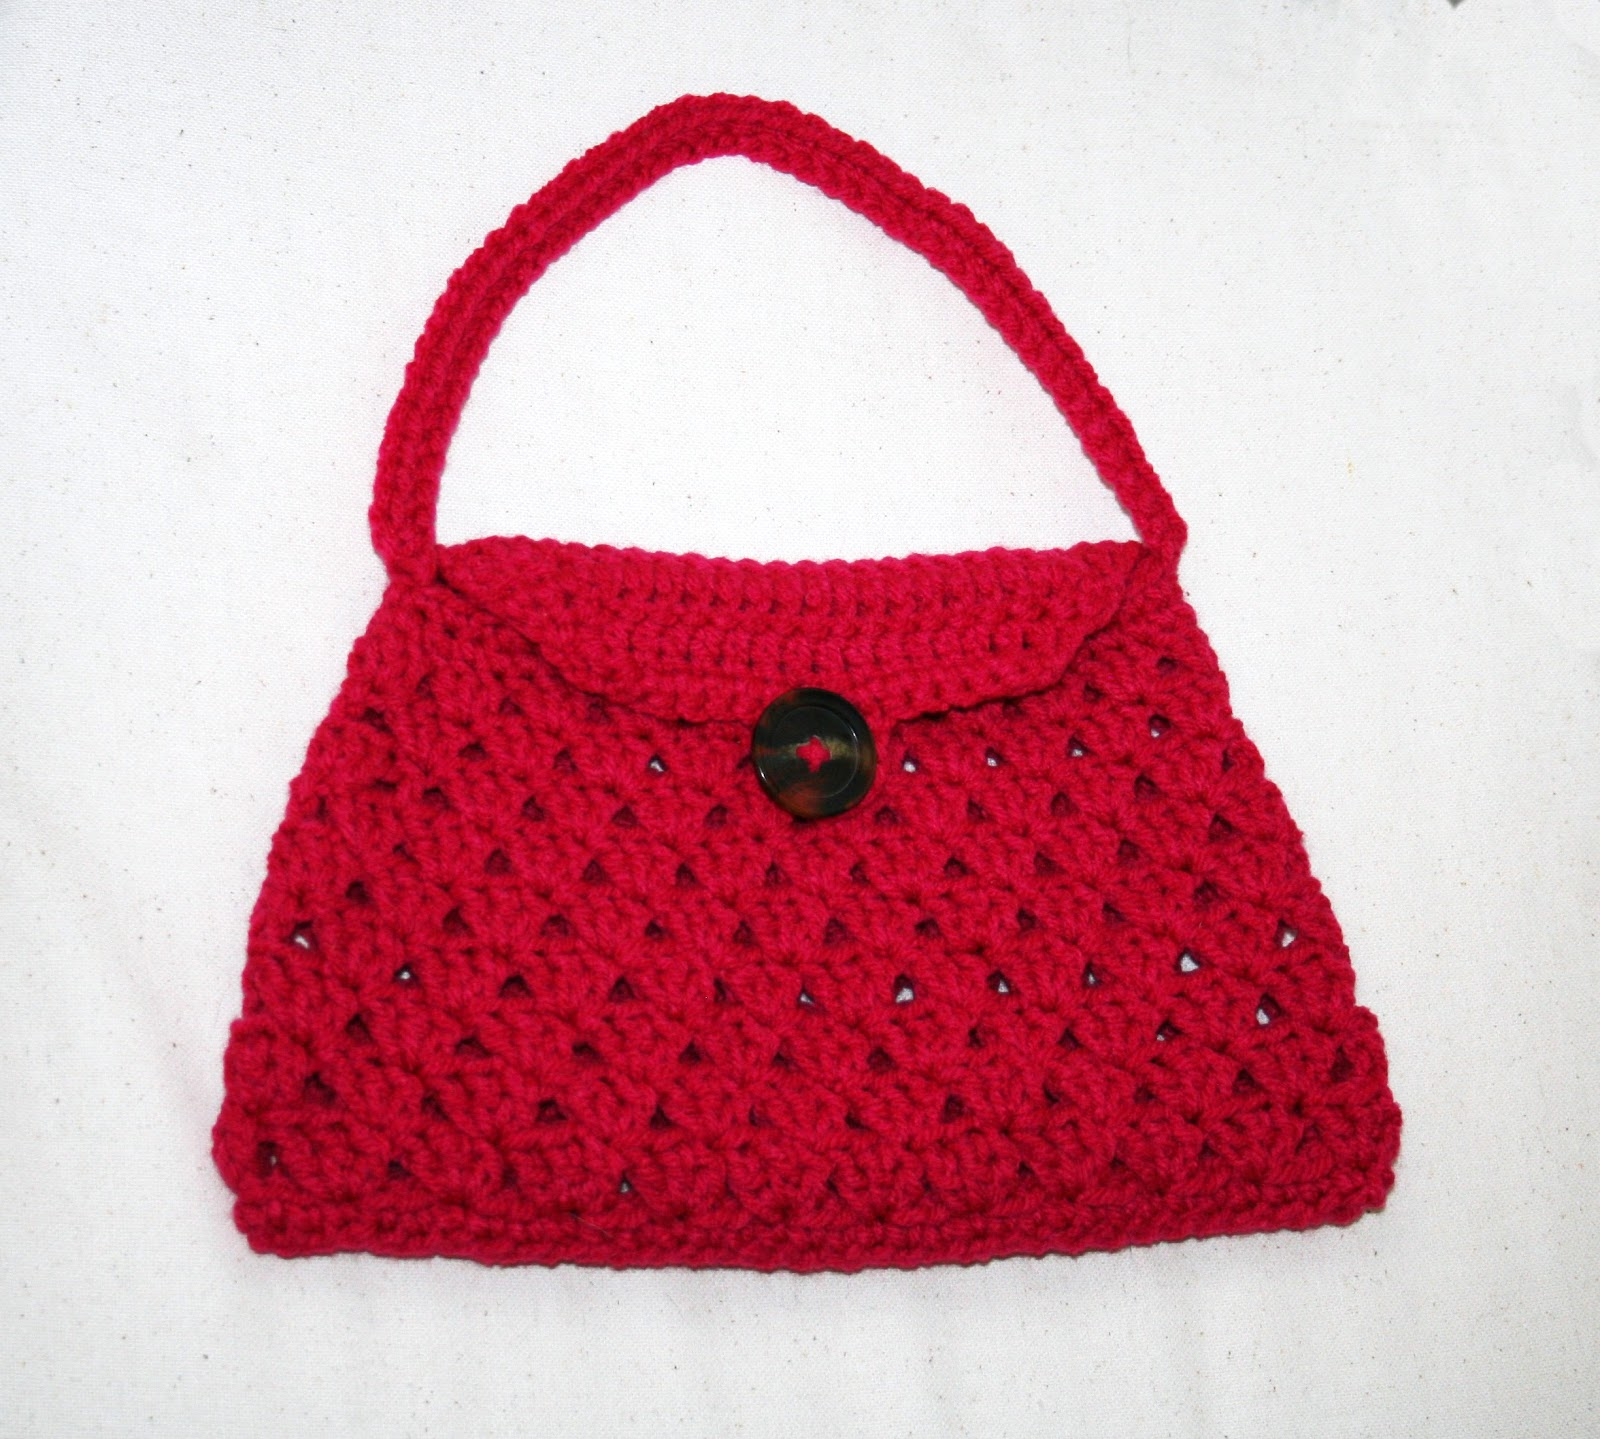 Crochet Satchel Bag Pattern : Tampa Bay Crochet: Free Crochet Pattern: Stylish Crochet Handbag